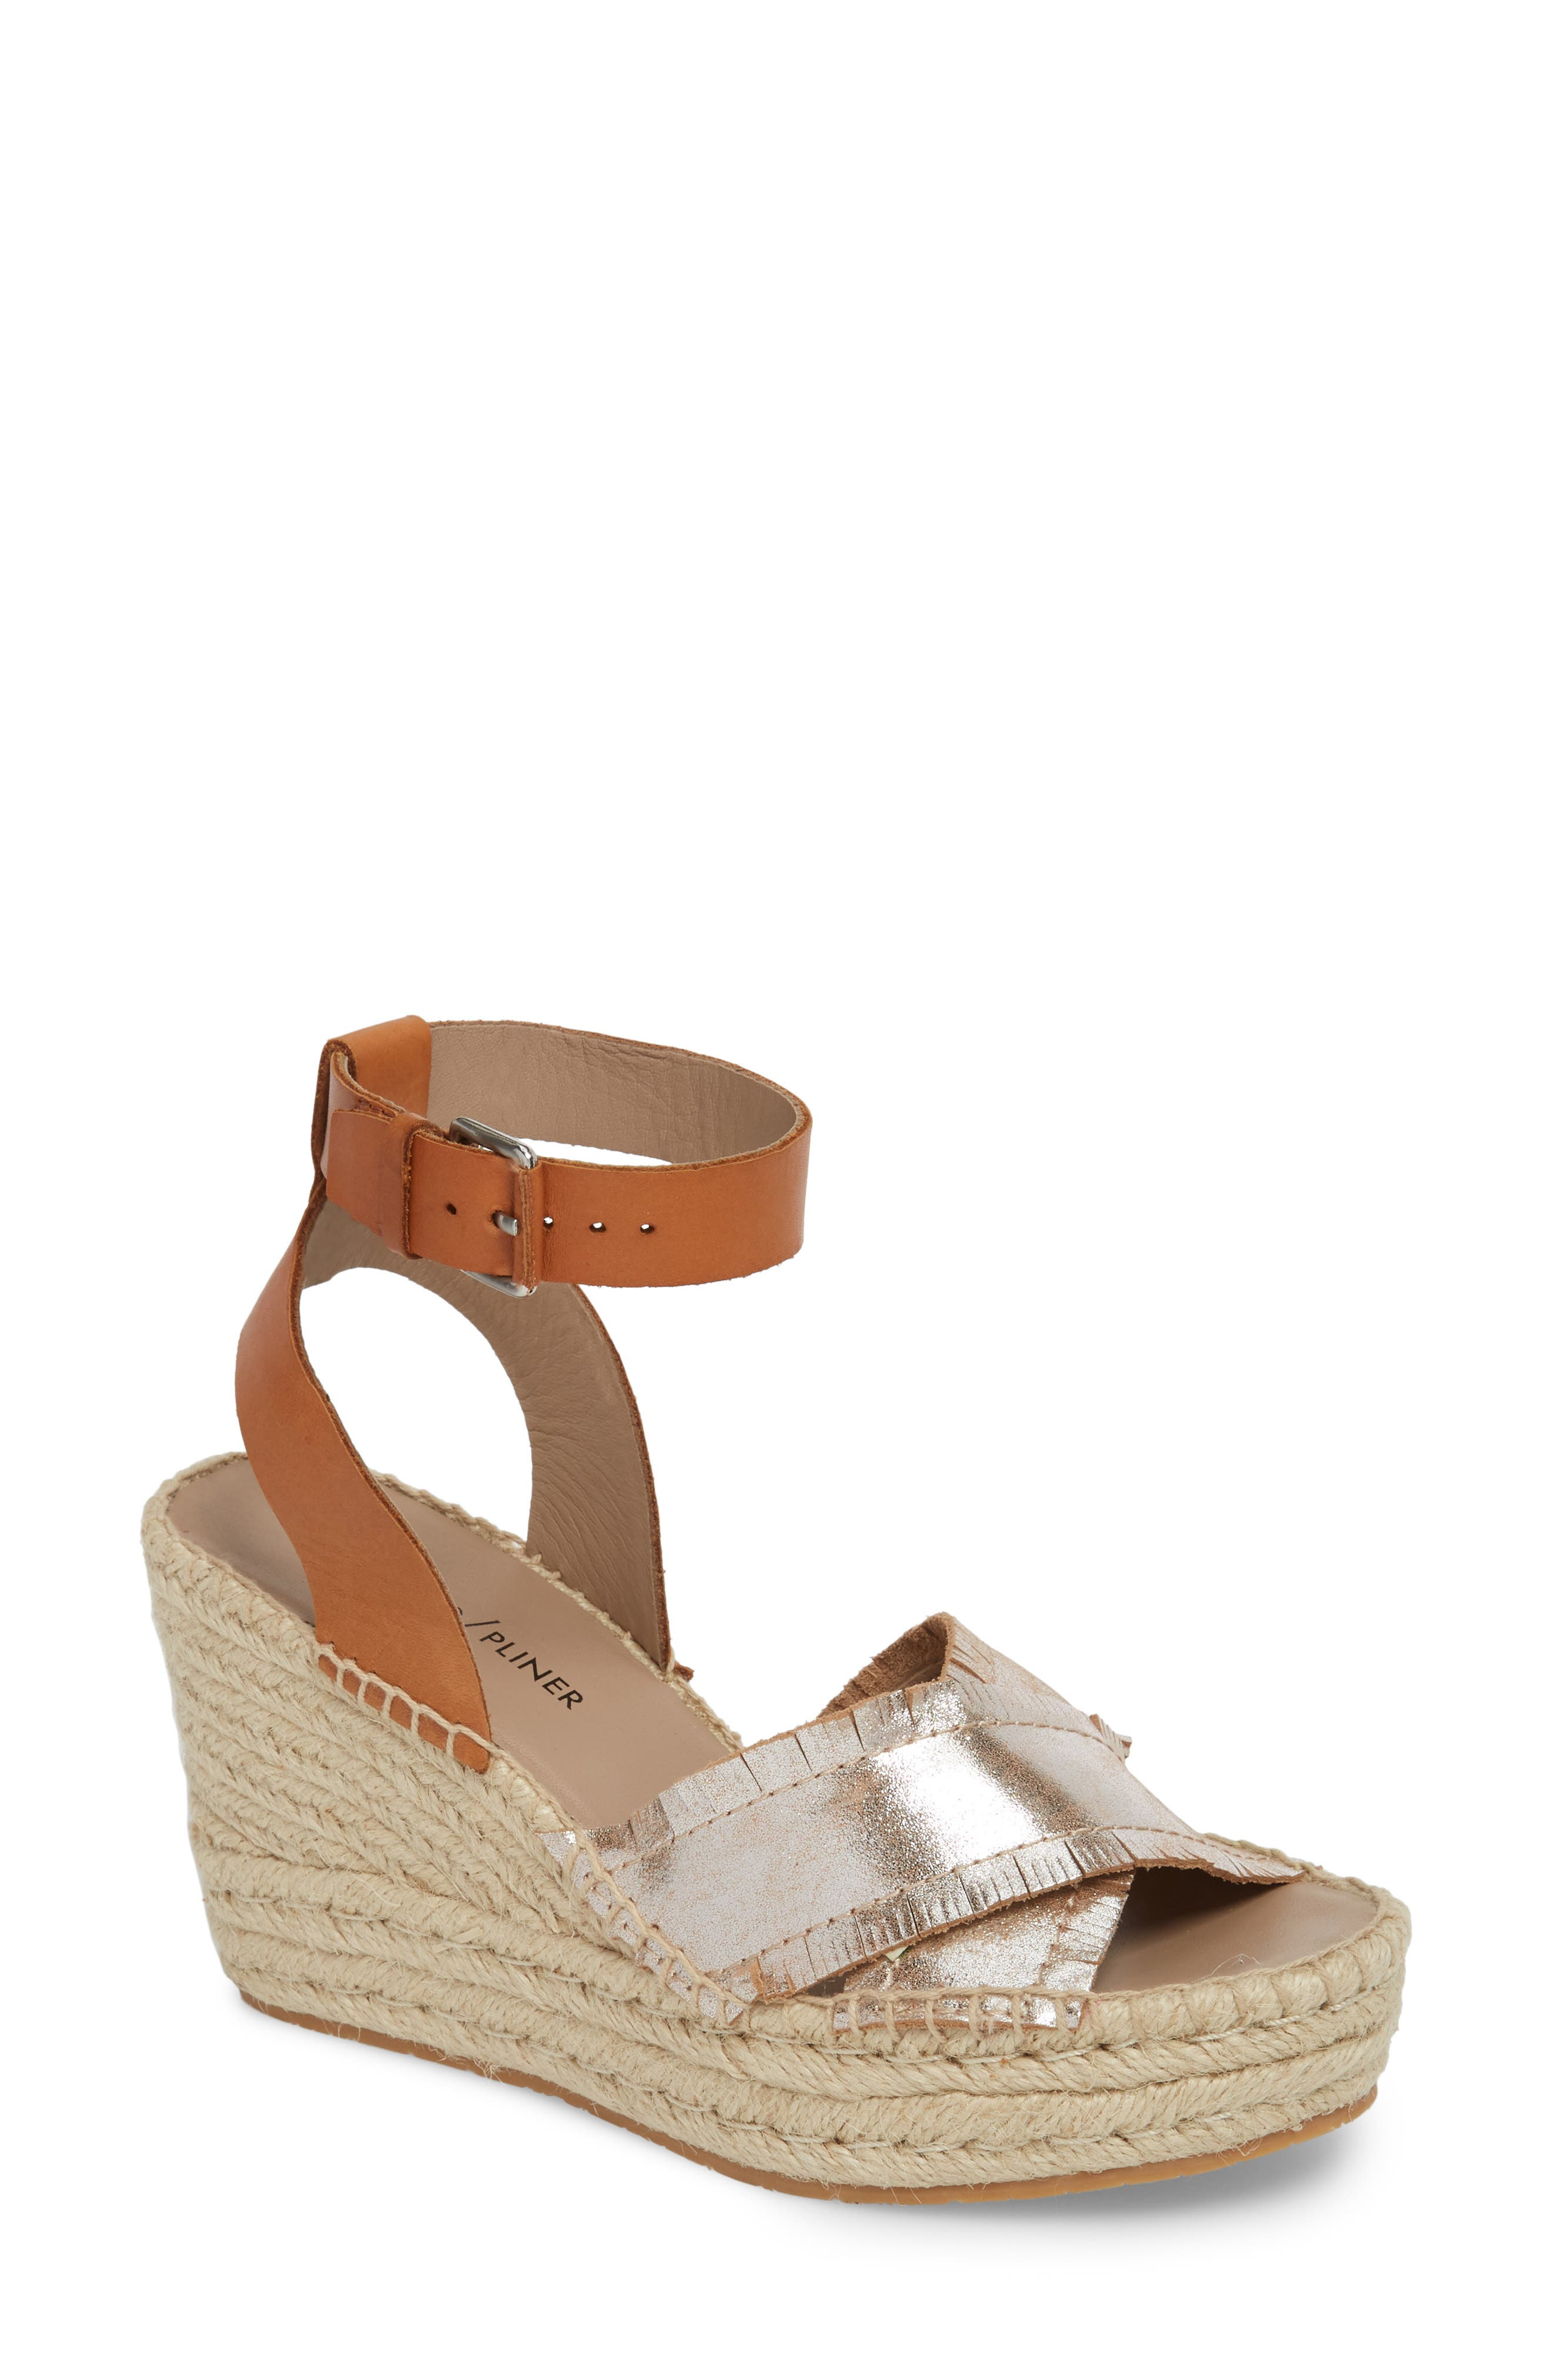 Ines Espadrille Wedge Sandal,                         Main,                         color, 041